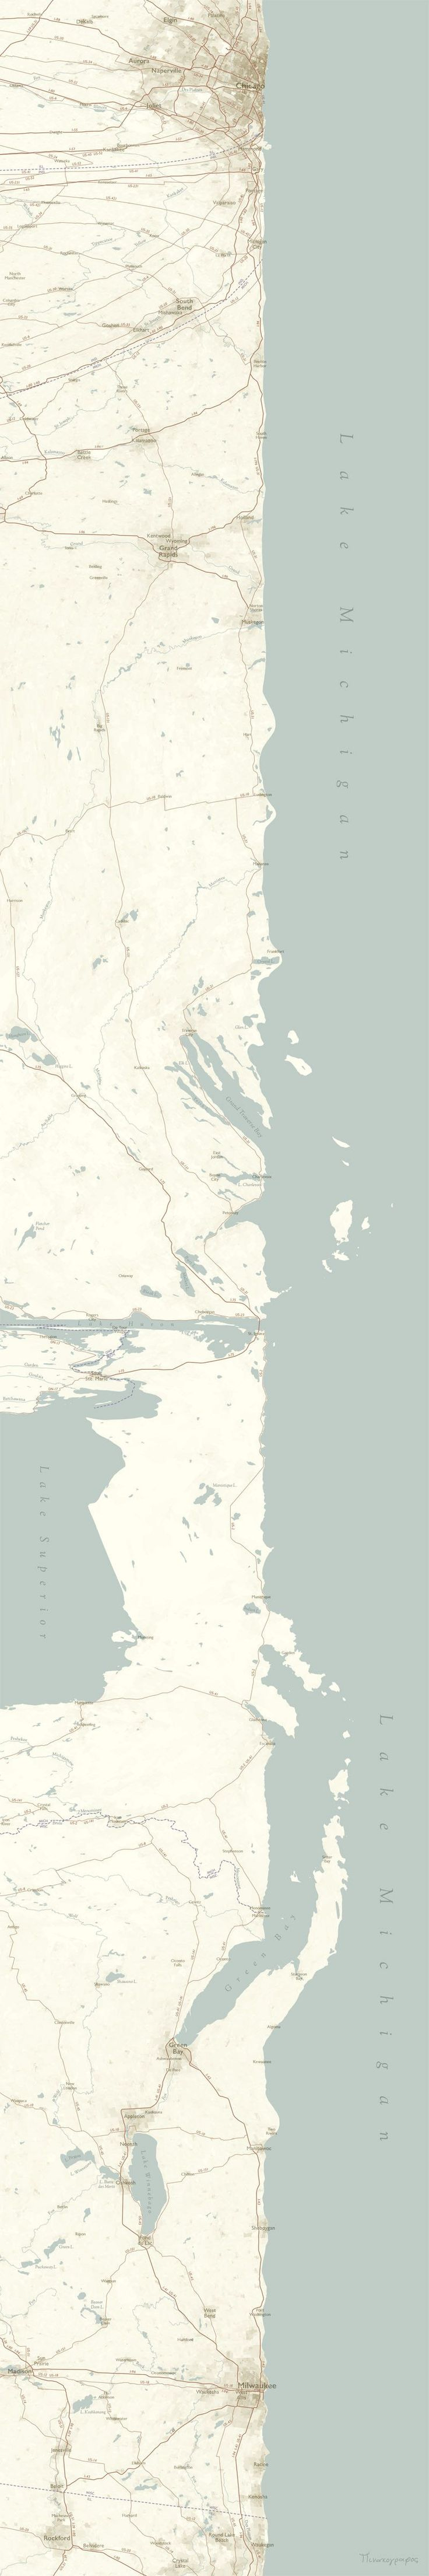 The Coast of Lake Michigan Looks Extra Oceanic in This New 'Linear Map'